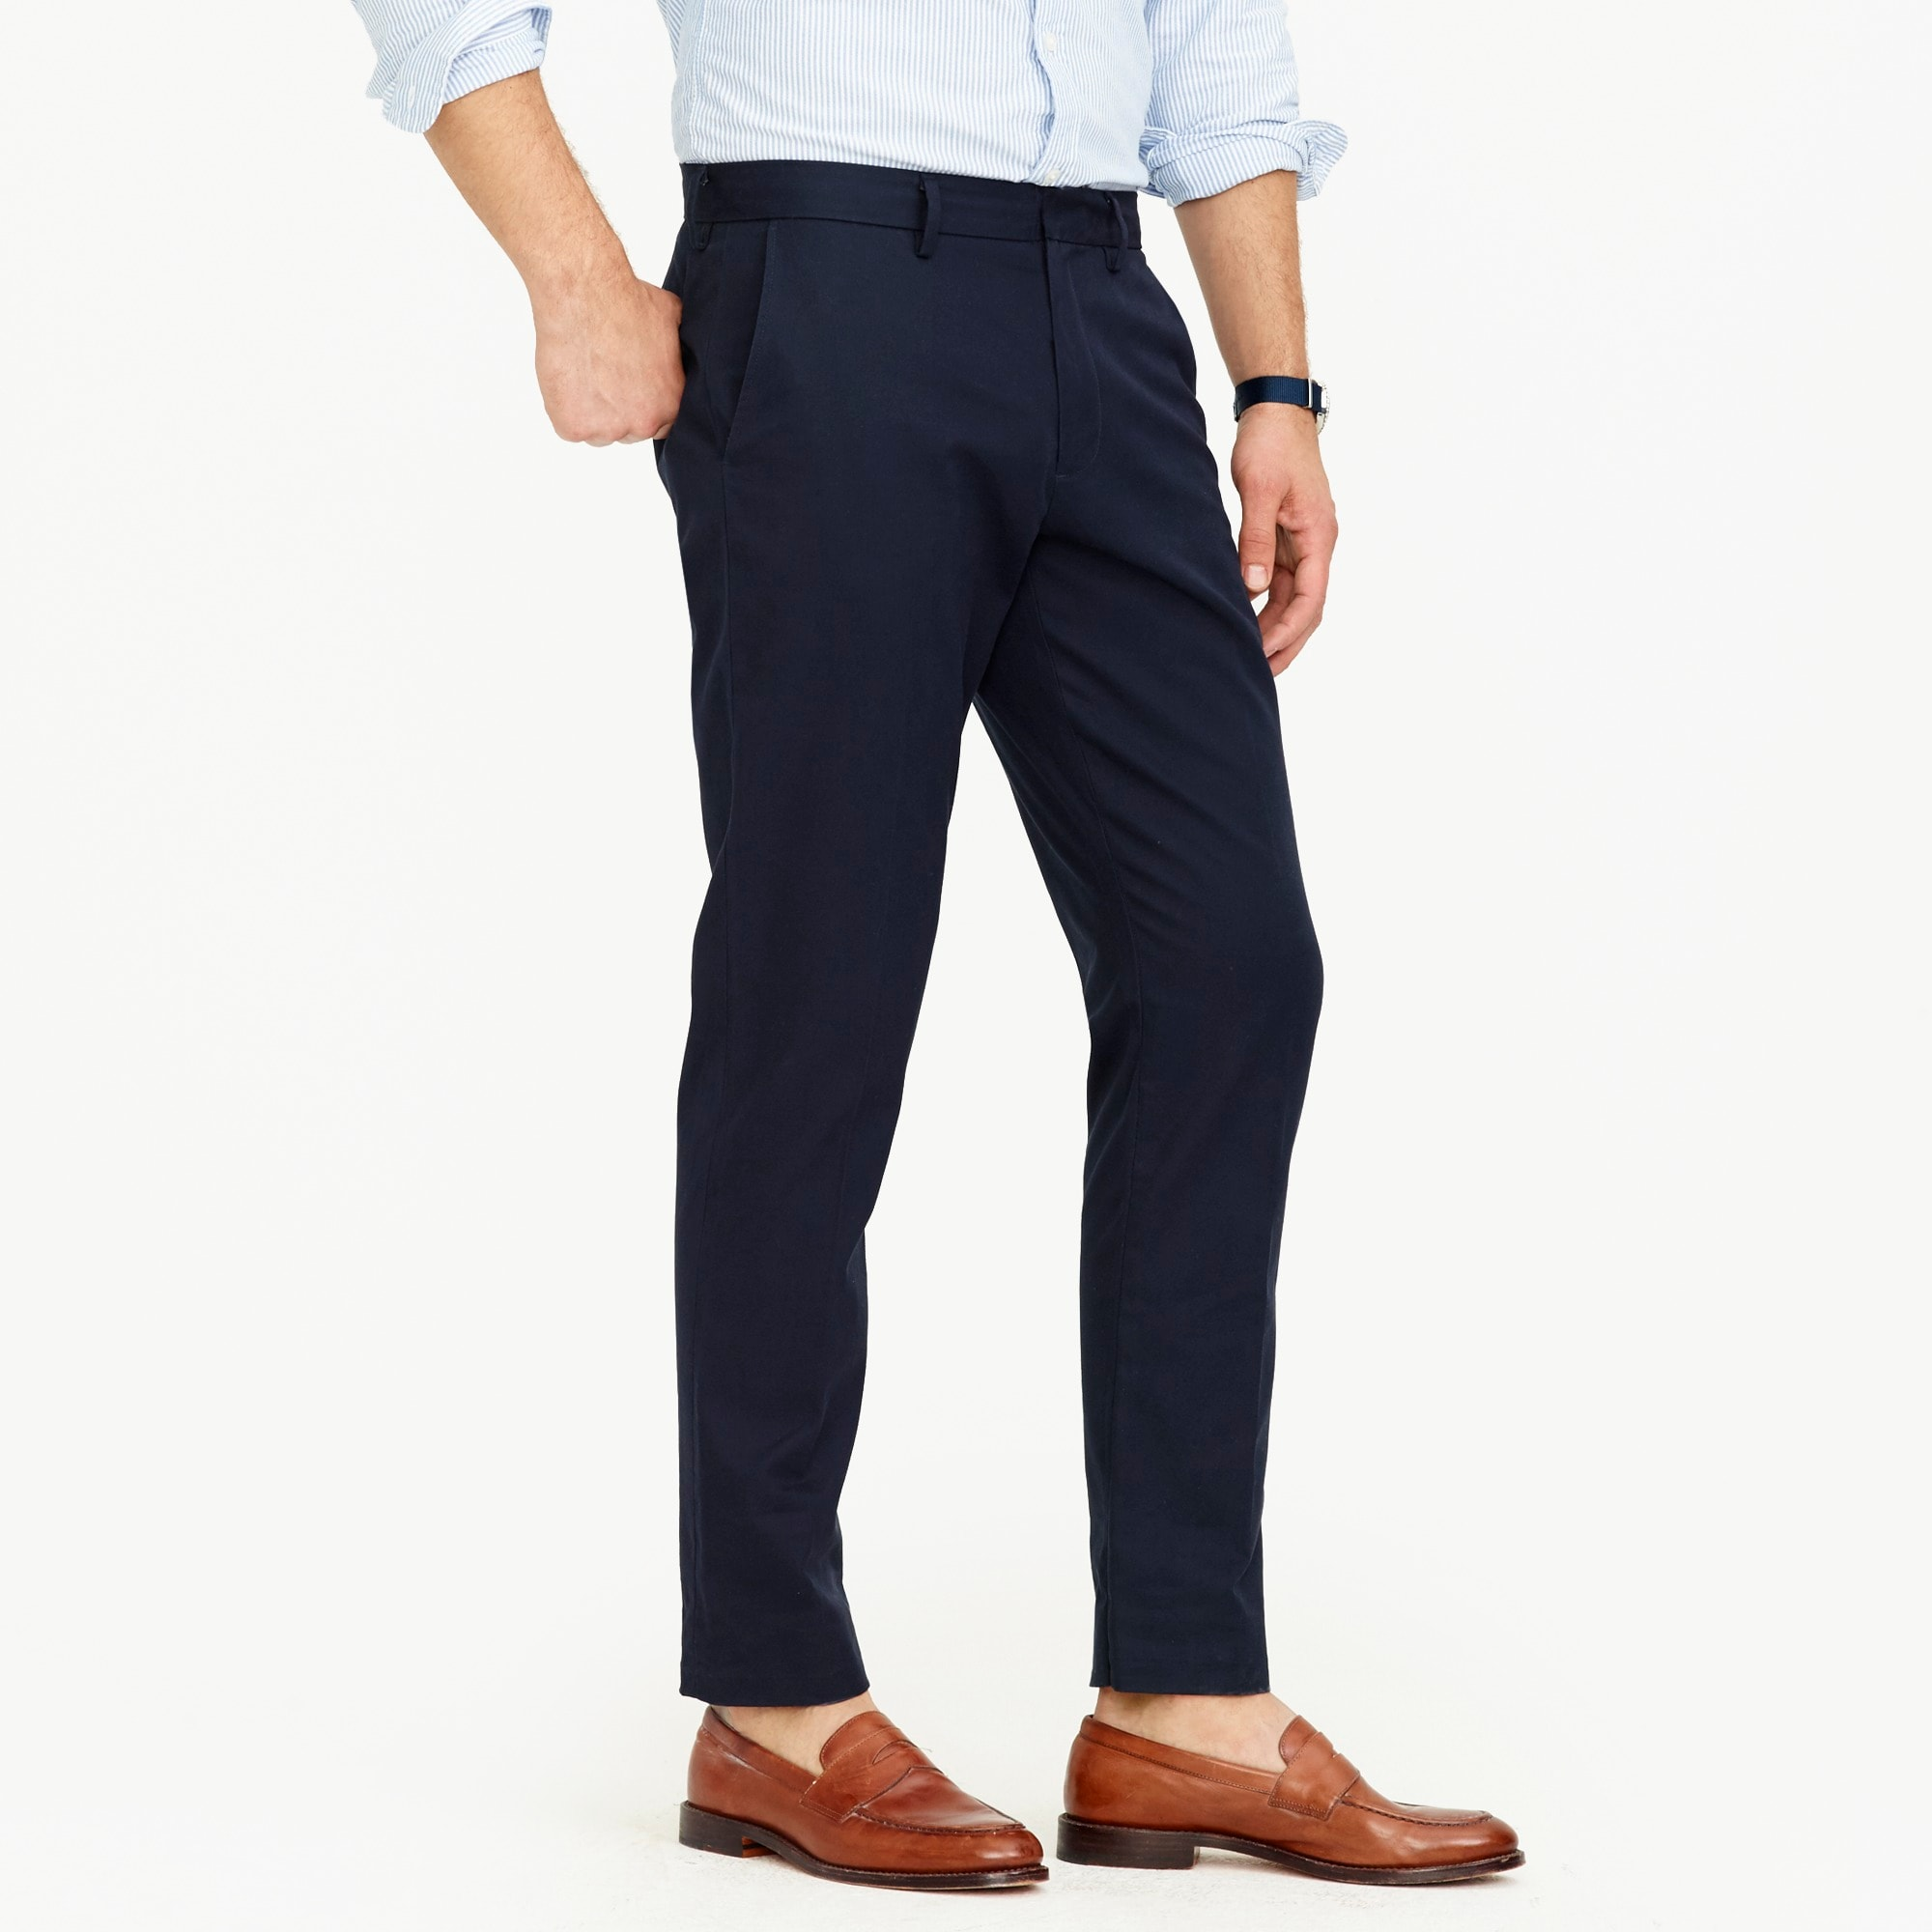 Bowery Slim-fit pant in cotton twill